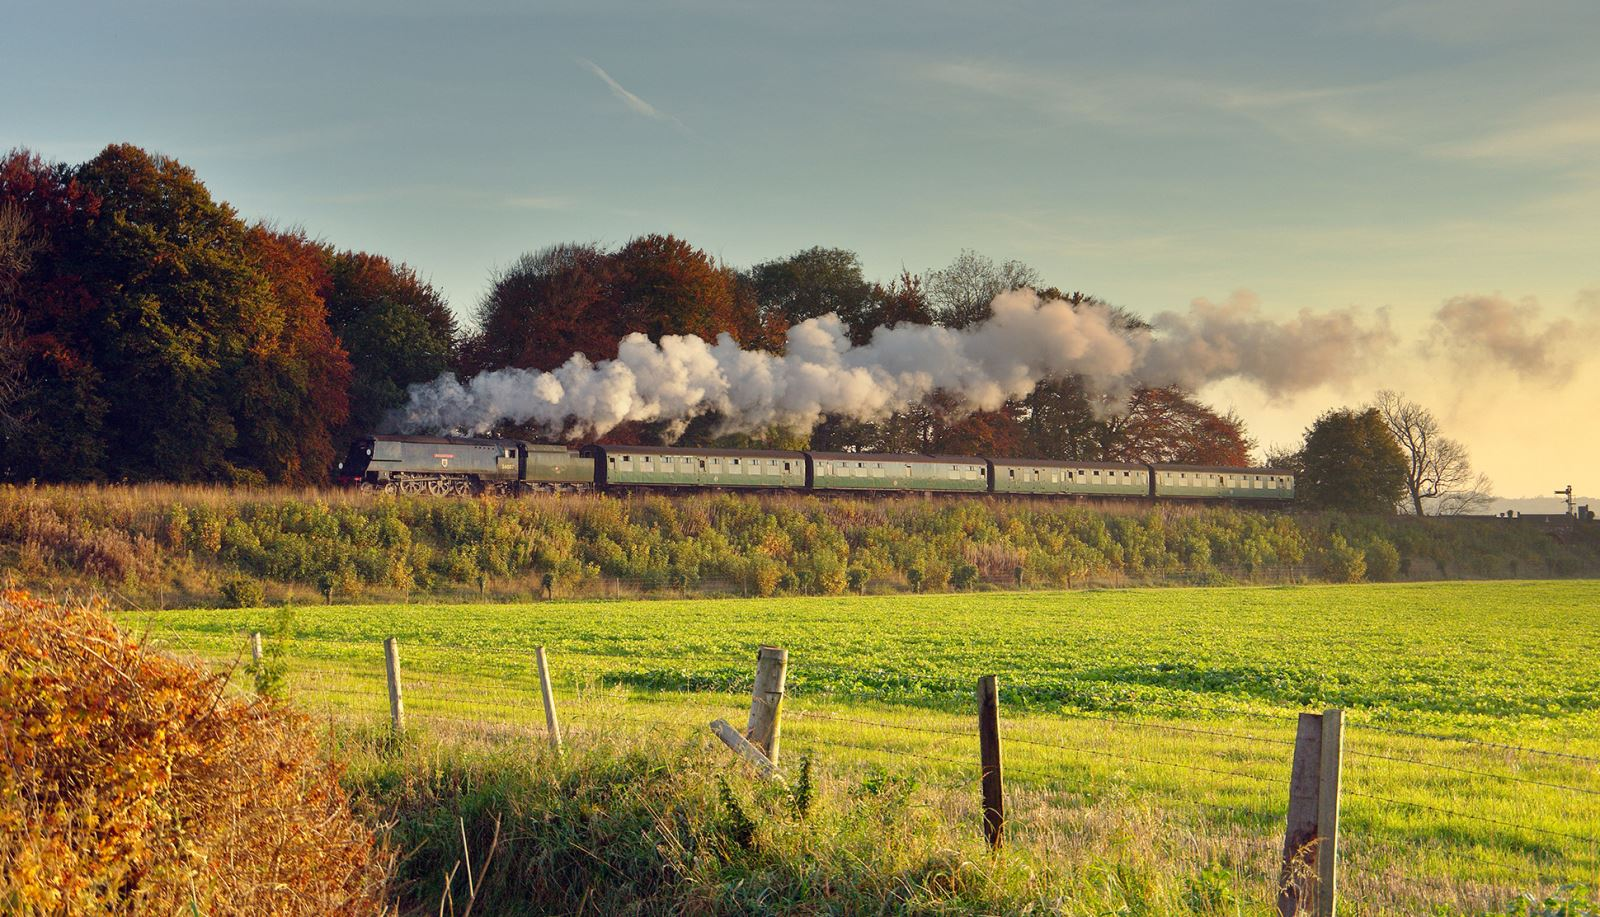 The Watercress Line steaming through the Hampshire countryside